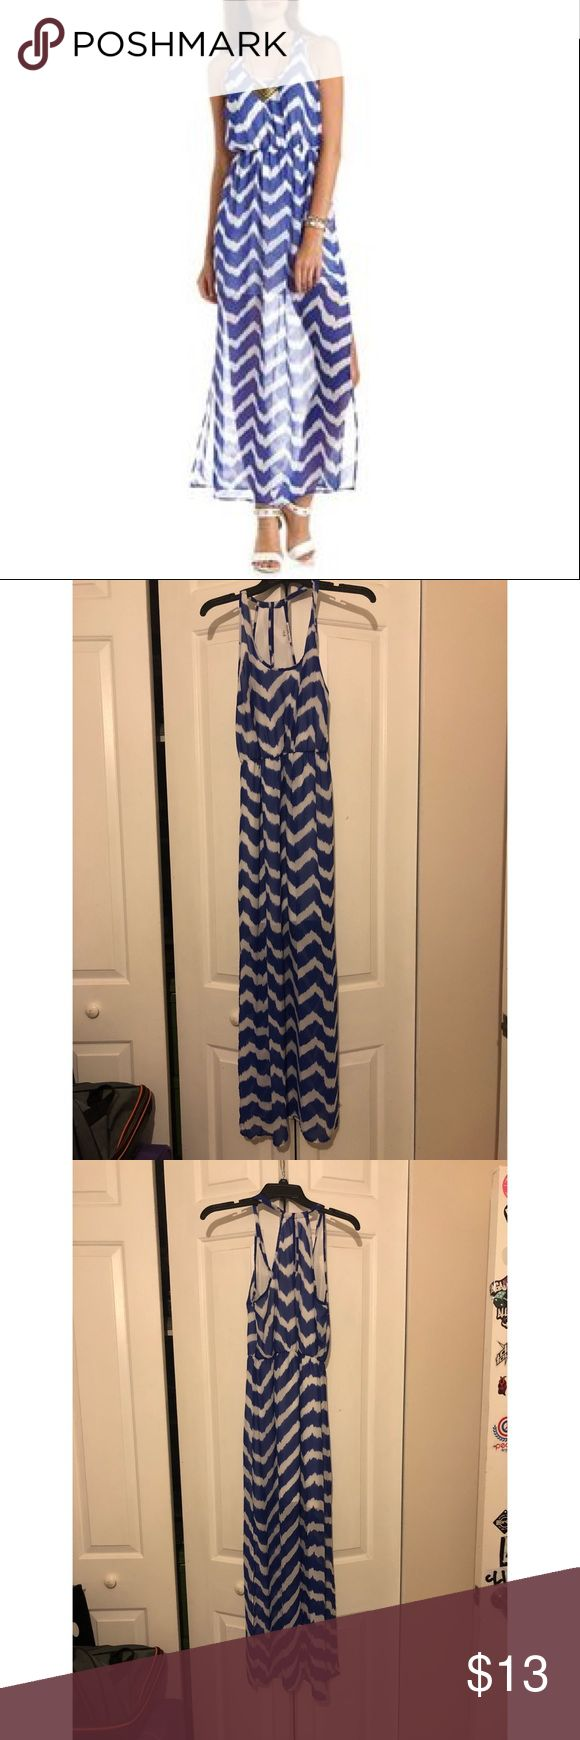 Blue and white flowy maxi! Has slits on side of legs, lined until mid thigh Beautiful for on the beach! Charlotte Russe Size Medium Worn a handful of times 💕 Charlotte Russe Dresses